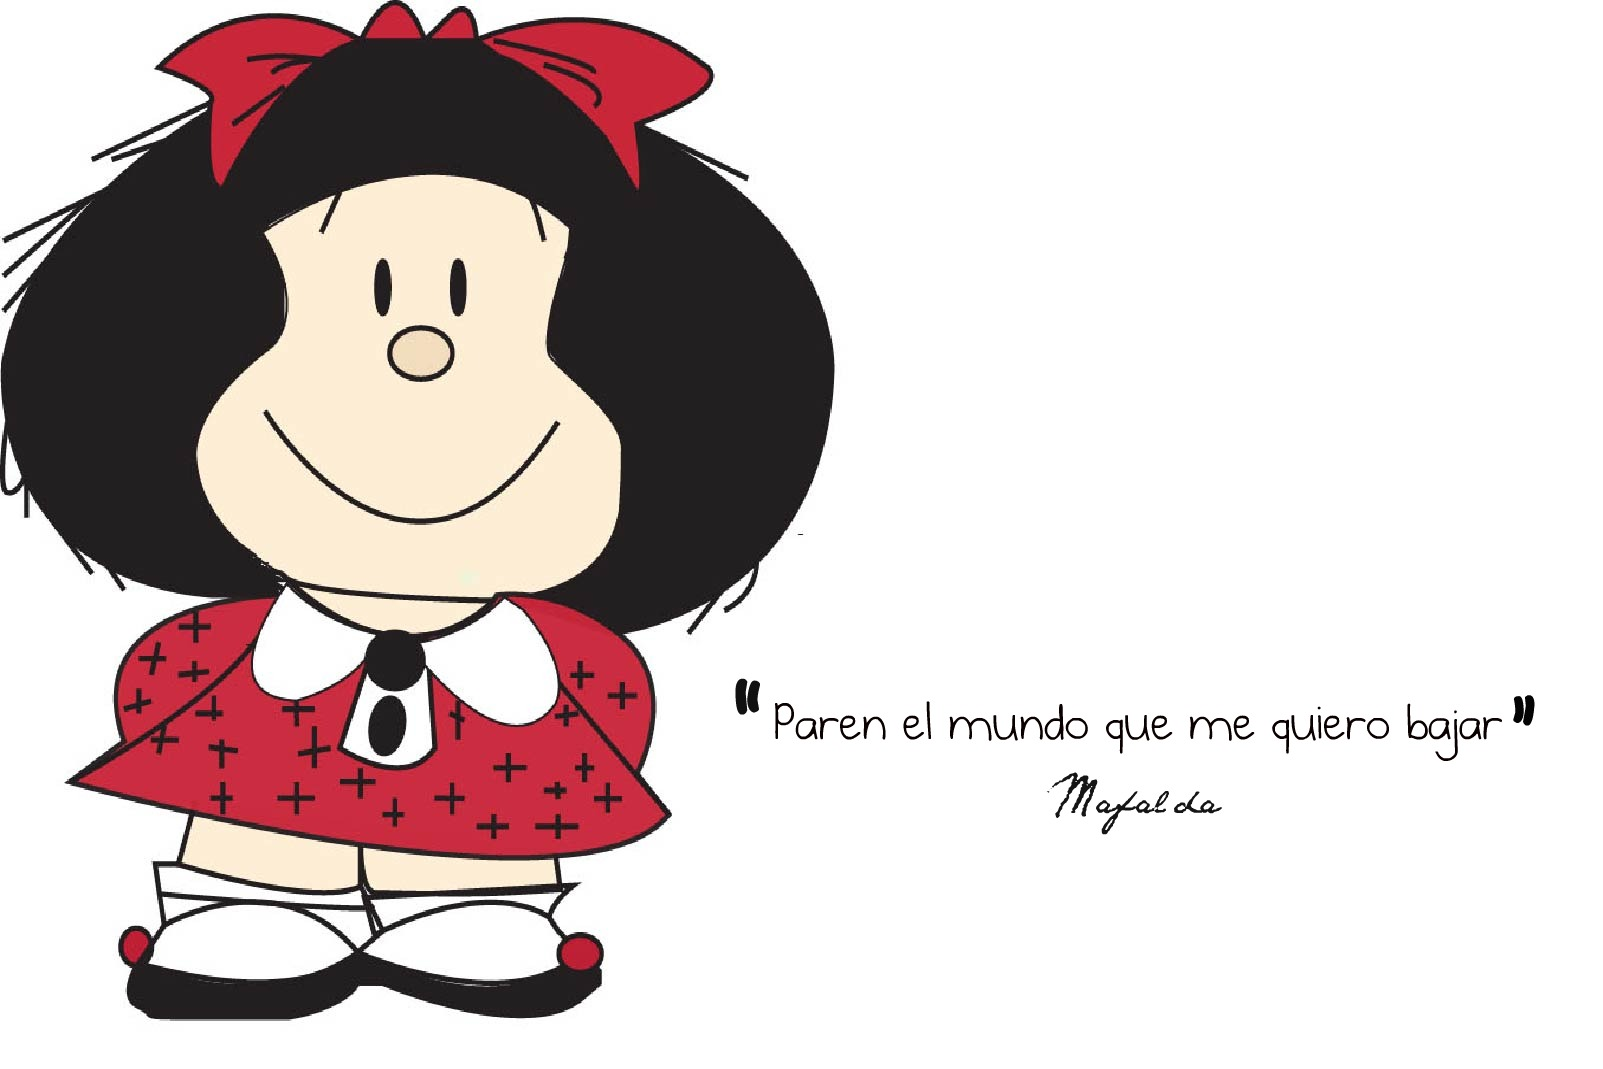 95 Mafalda Wallpapers On Wallpapersafari